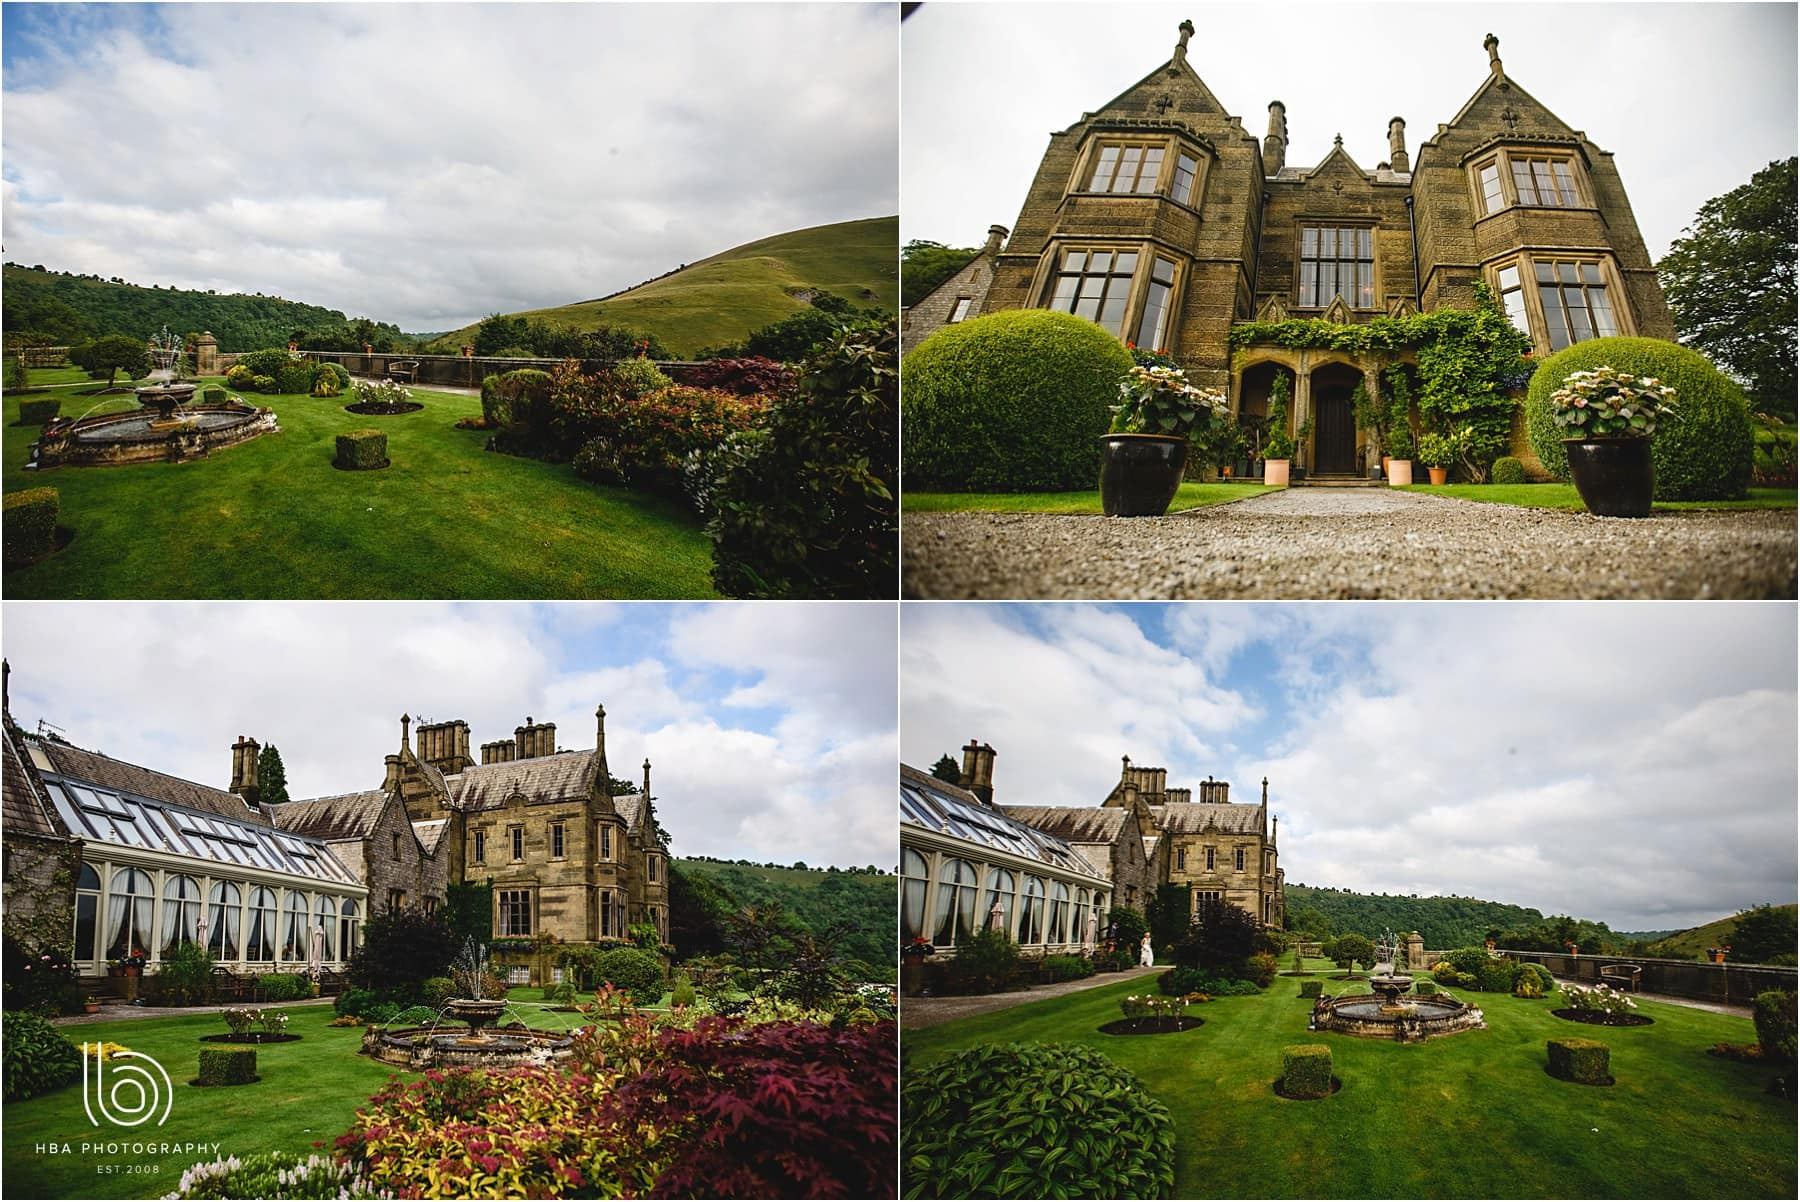 photos of Cressbrook Hall